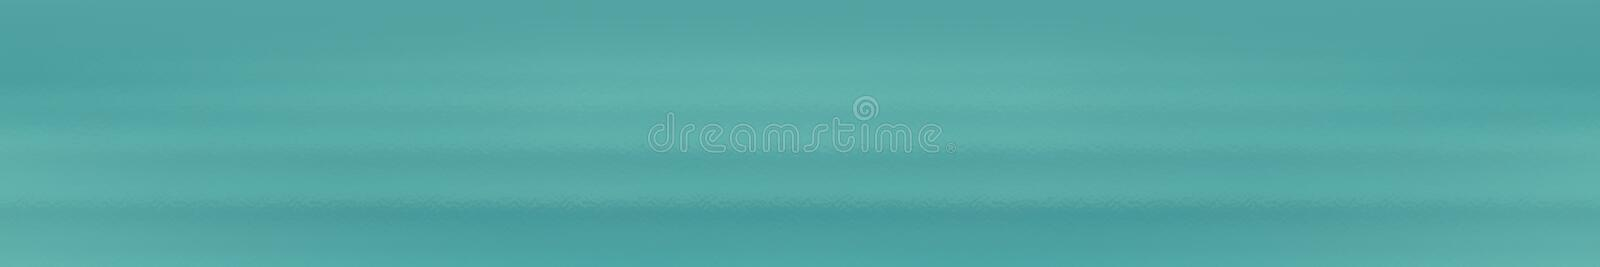 Teal web site header or footer background. Abstract design template royalty free illustration